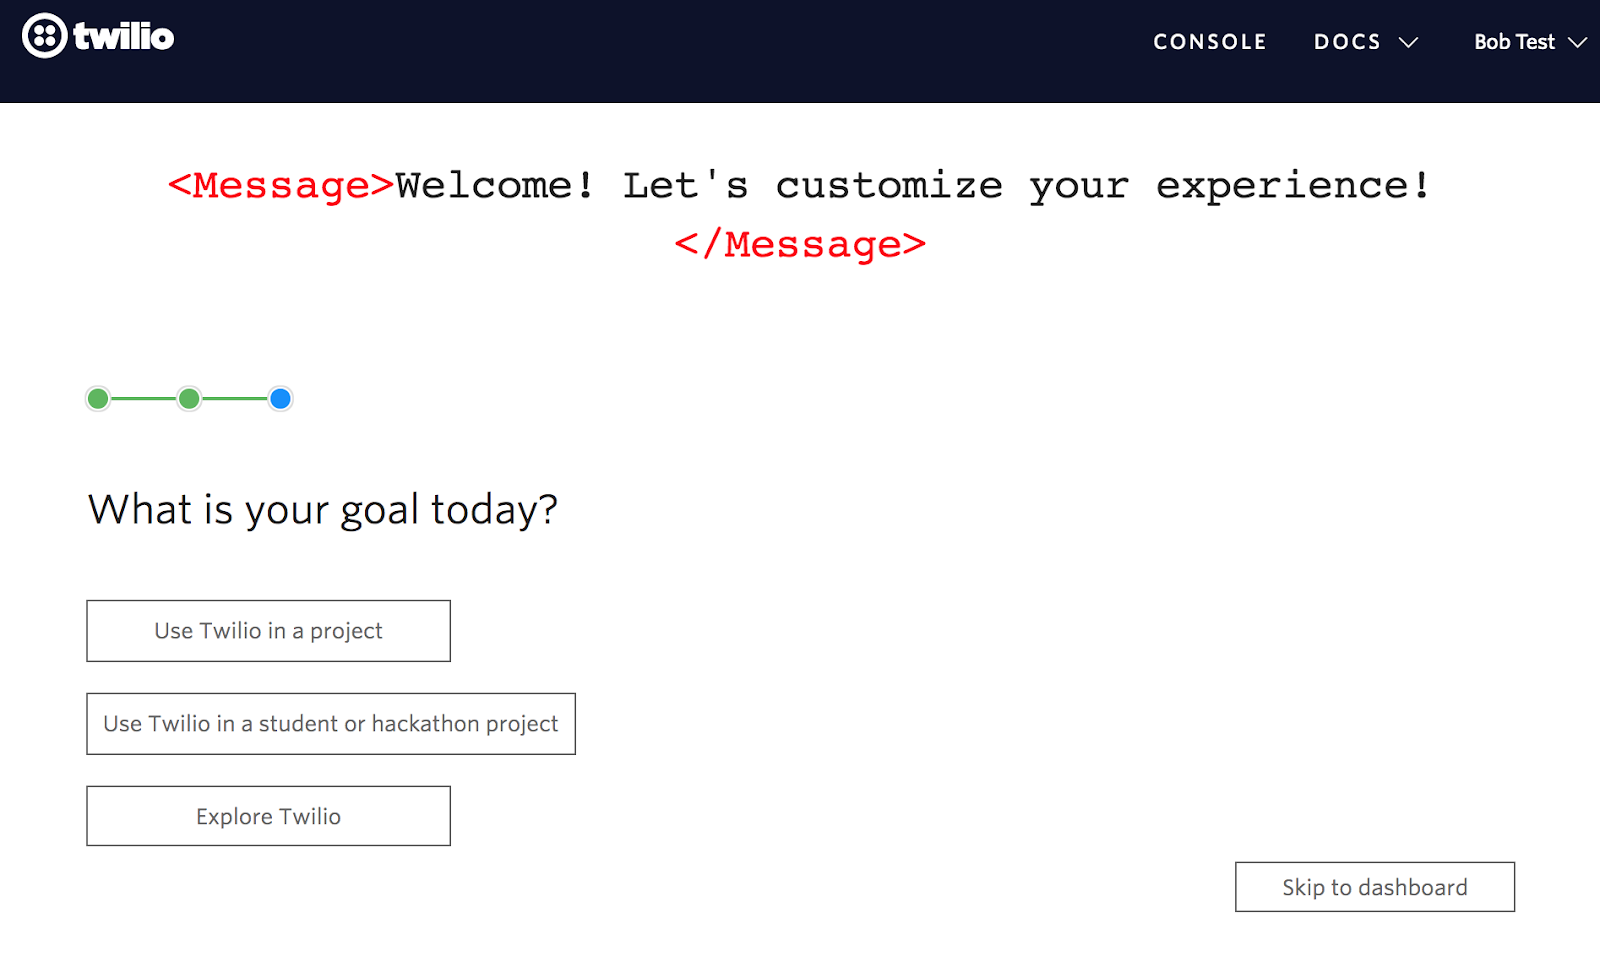 twilio new user onboarding personalization question 3 user goals